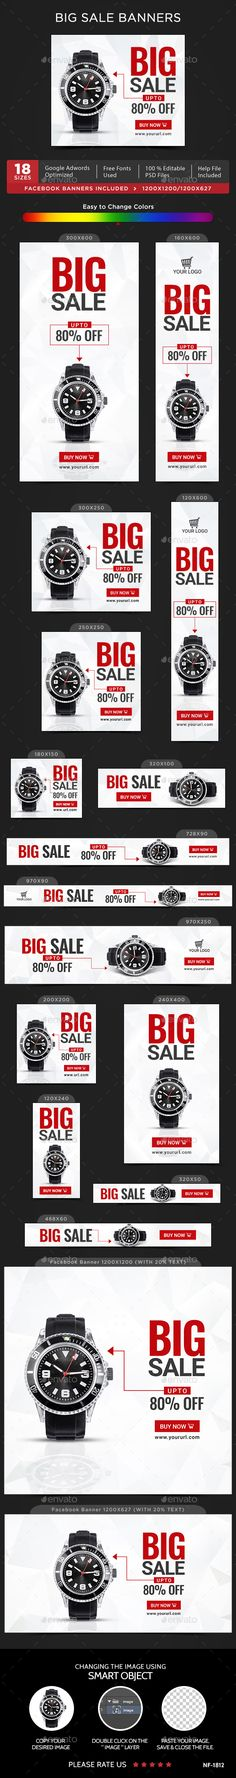 Big Sale #Banners - #Banners & Ads Web Elements Download here: https://graphicriver.net/item/big-sale-banners/20056456?ref=alena994